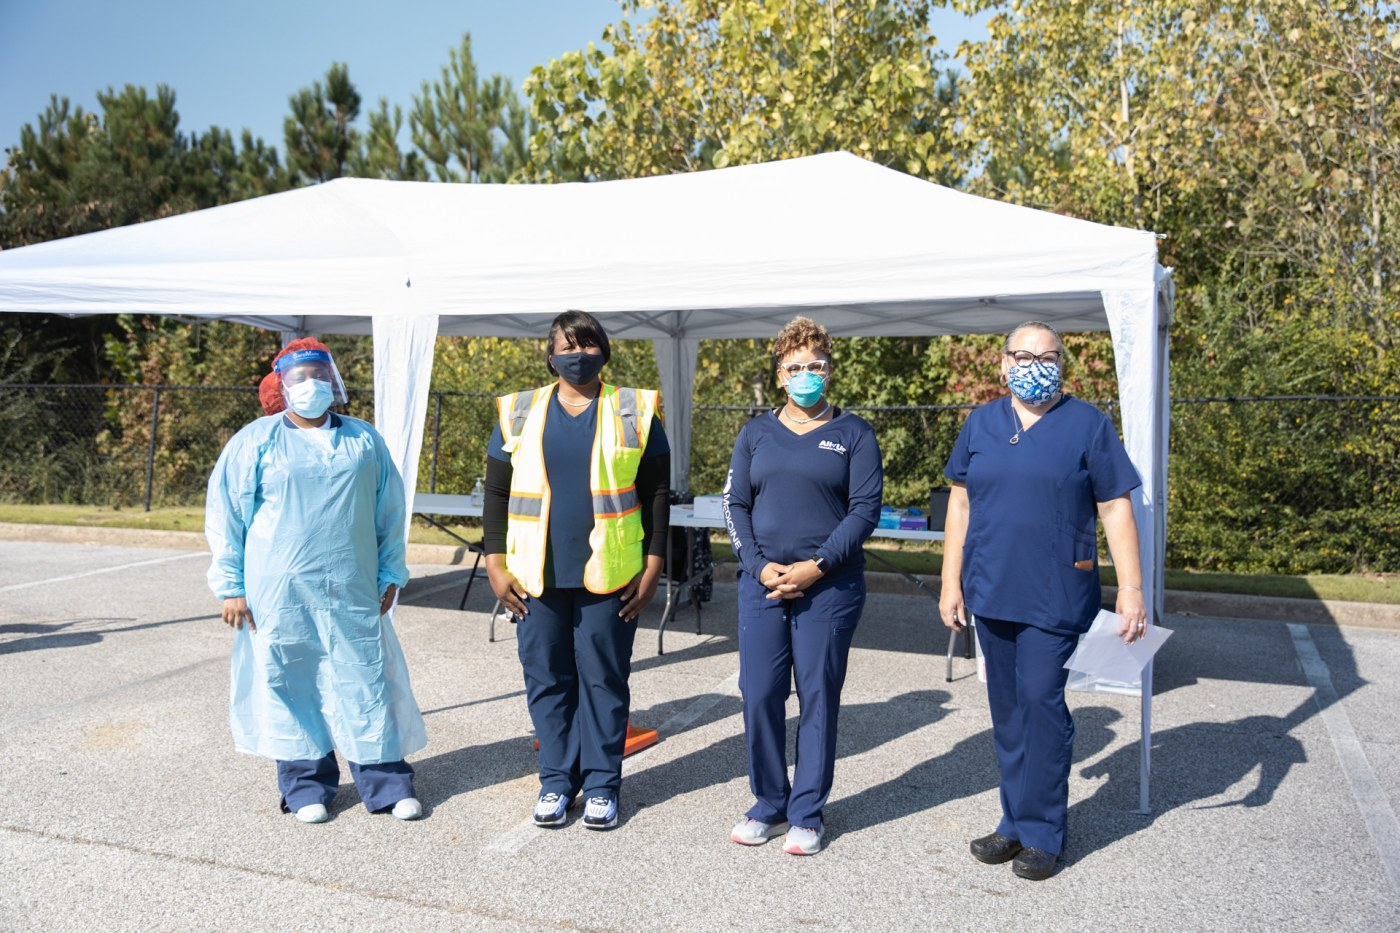 Health professionals offering testing in the community